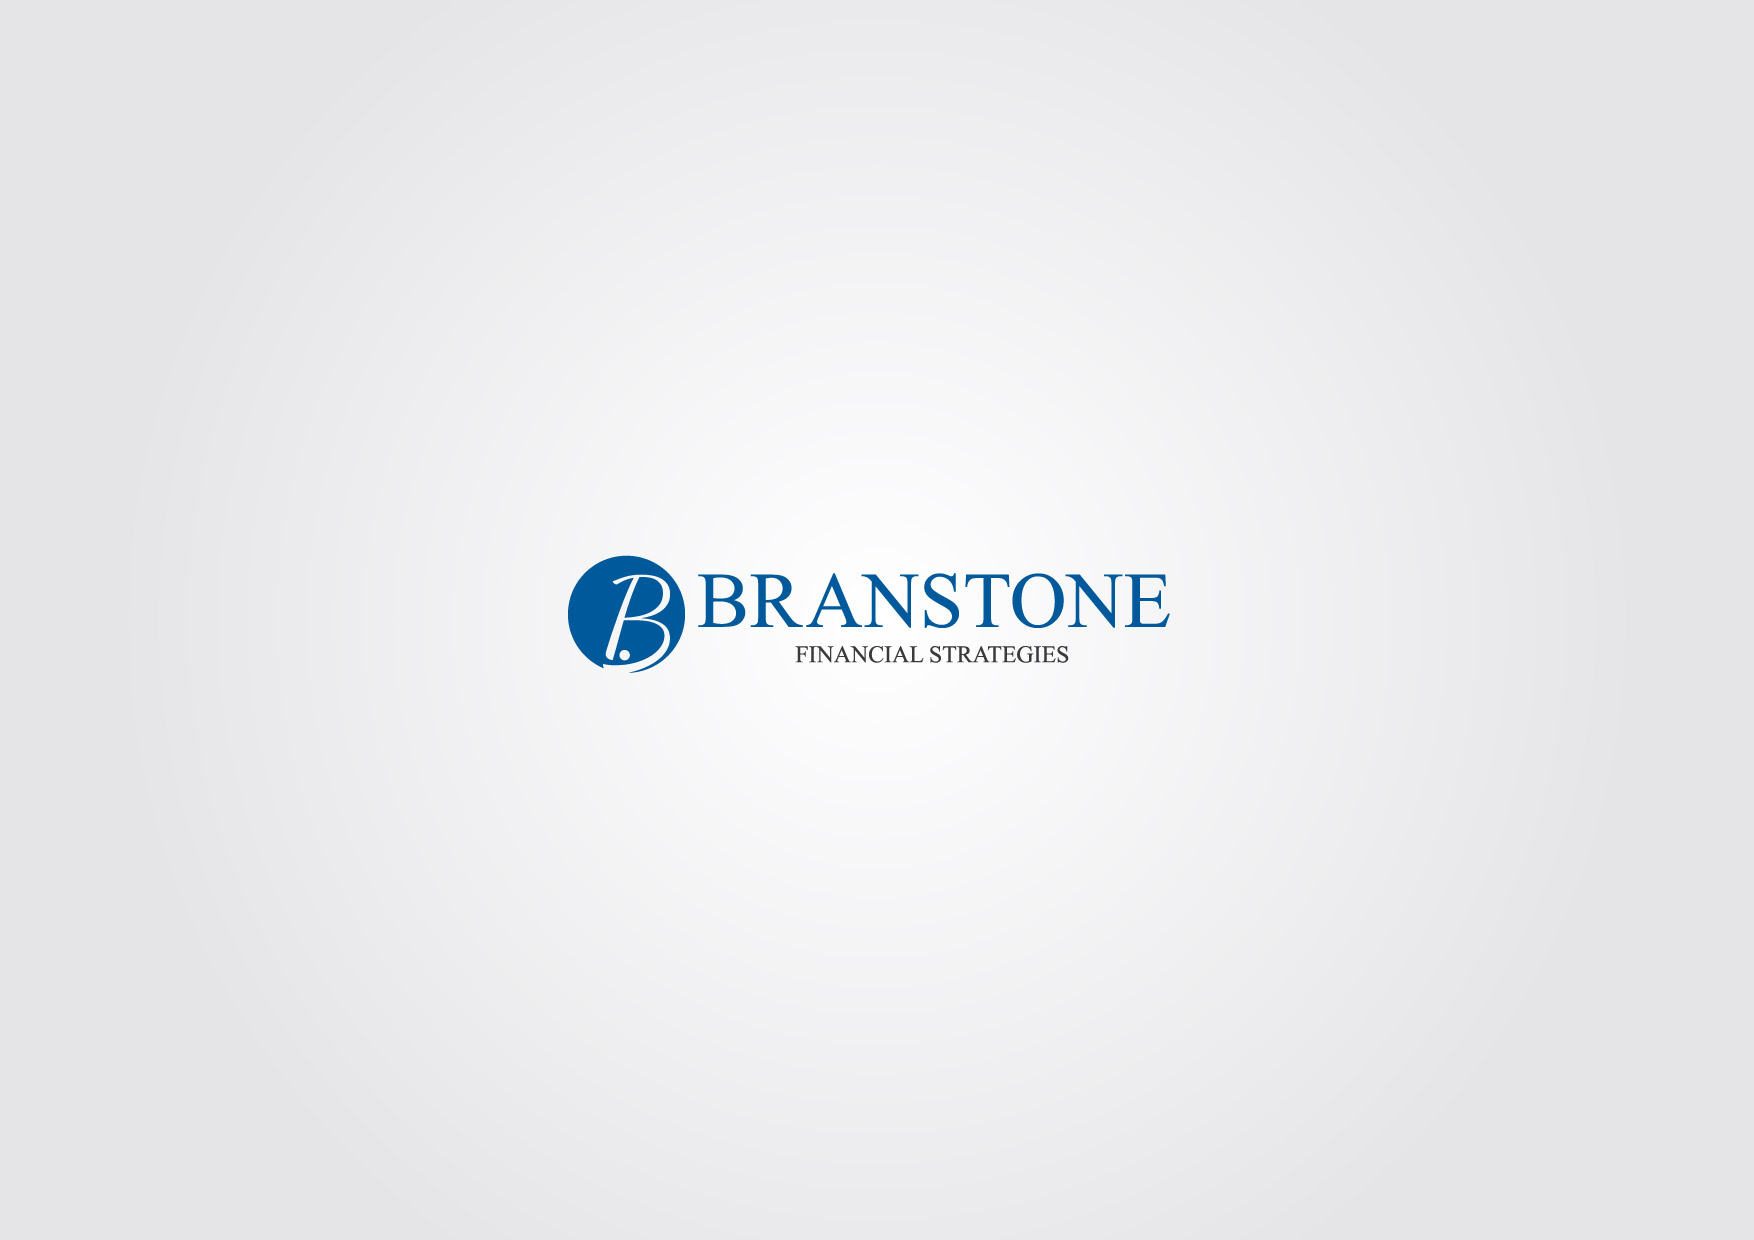 Logo Design by Osi Indra - Entry No. 53 in the Logo Design Contest Inspiring Logo Design for Branstone Financial Strategies.